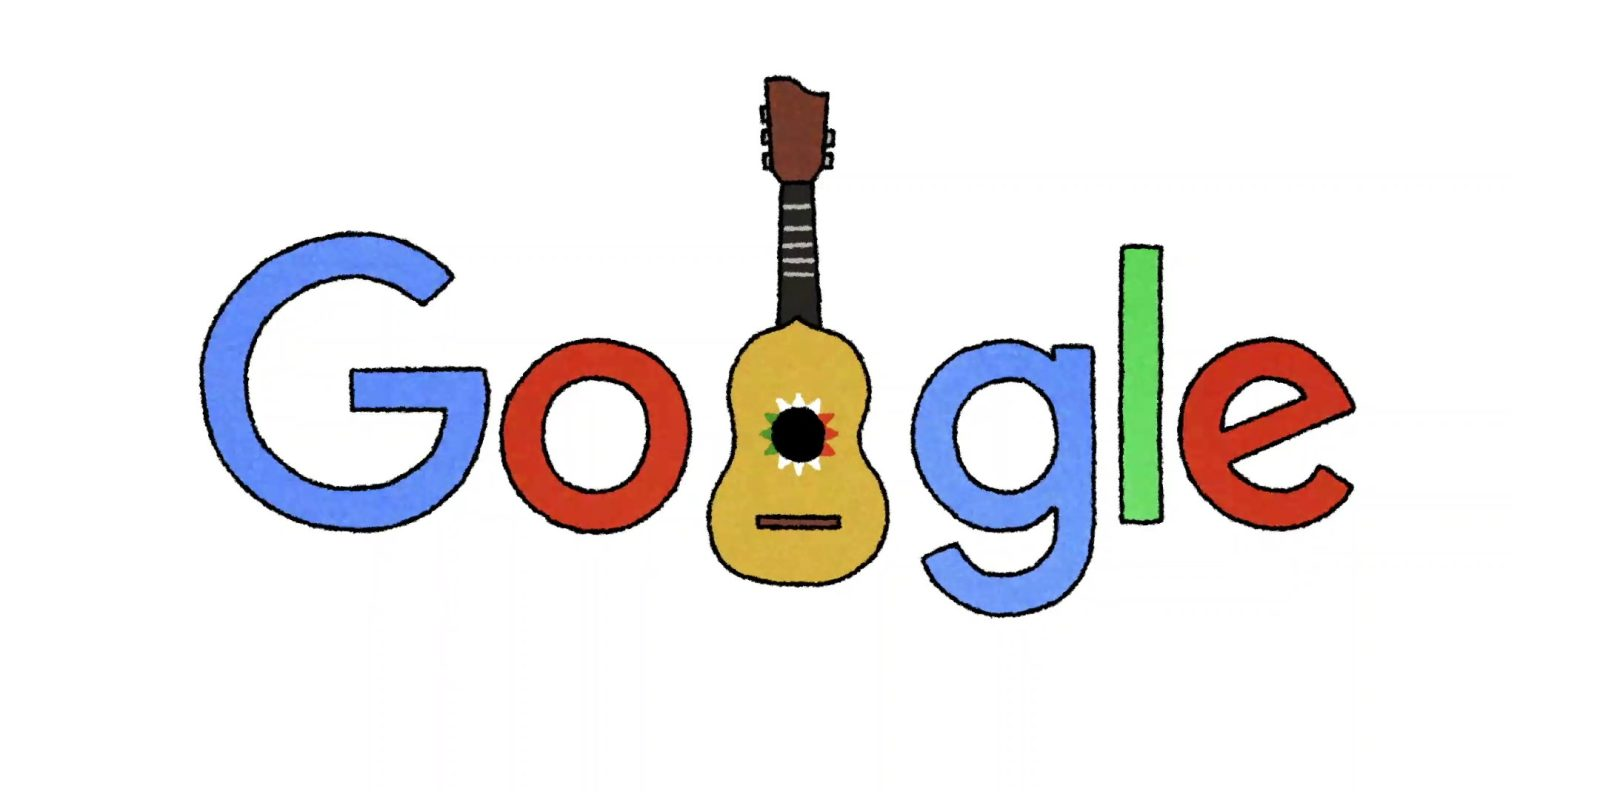 Google Doodle video pays tribute to mariachi - 9to5Google